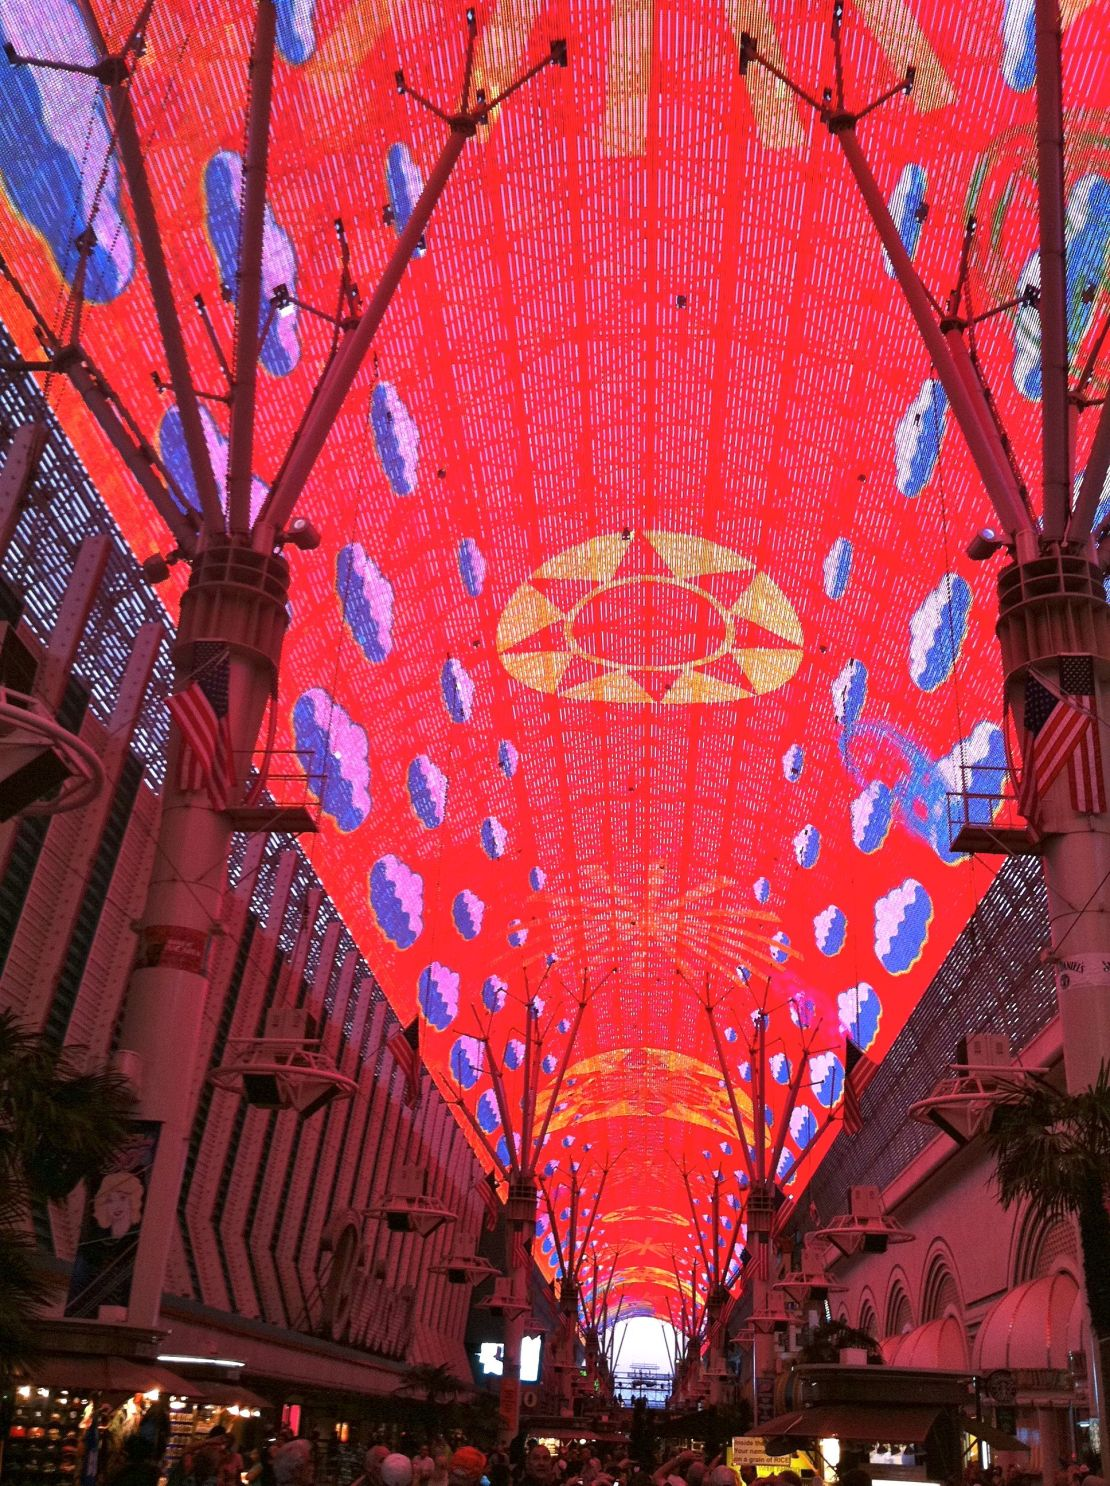 The Fremont Street Experience Fse Is A Pedestrian Mall And Attraction In Downtown Las Vegas Nevada Occupies Westernmost 5 Blocks Of